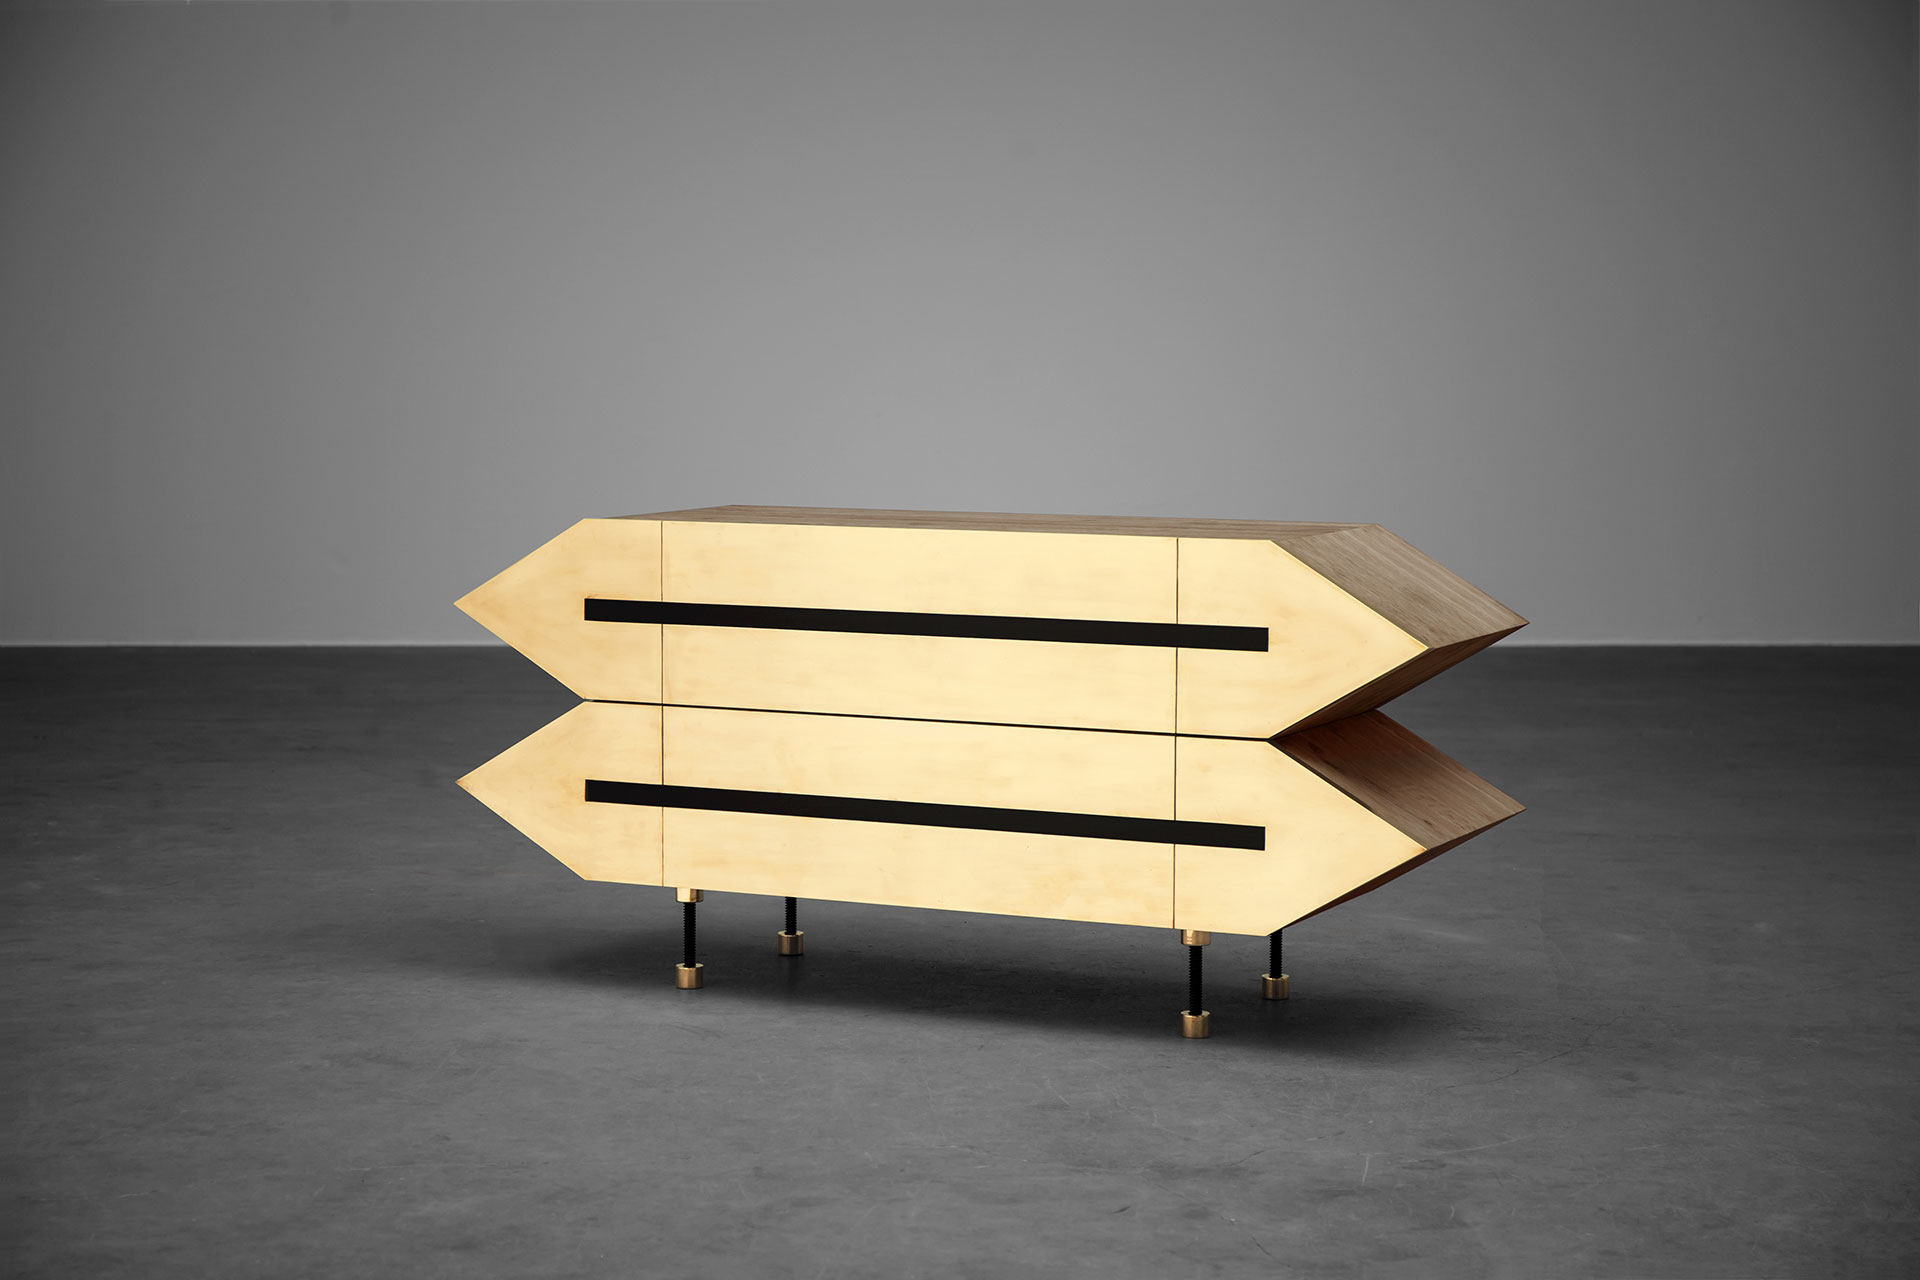 Wood and brass furniture inspired by brutalist design